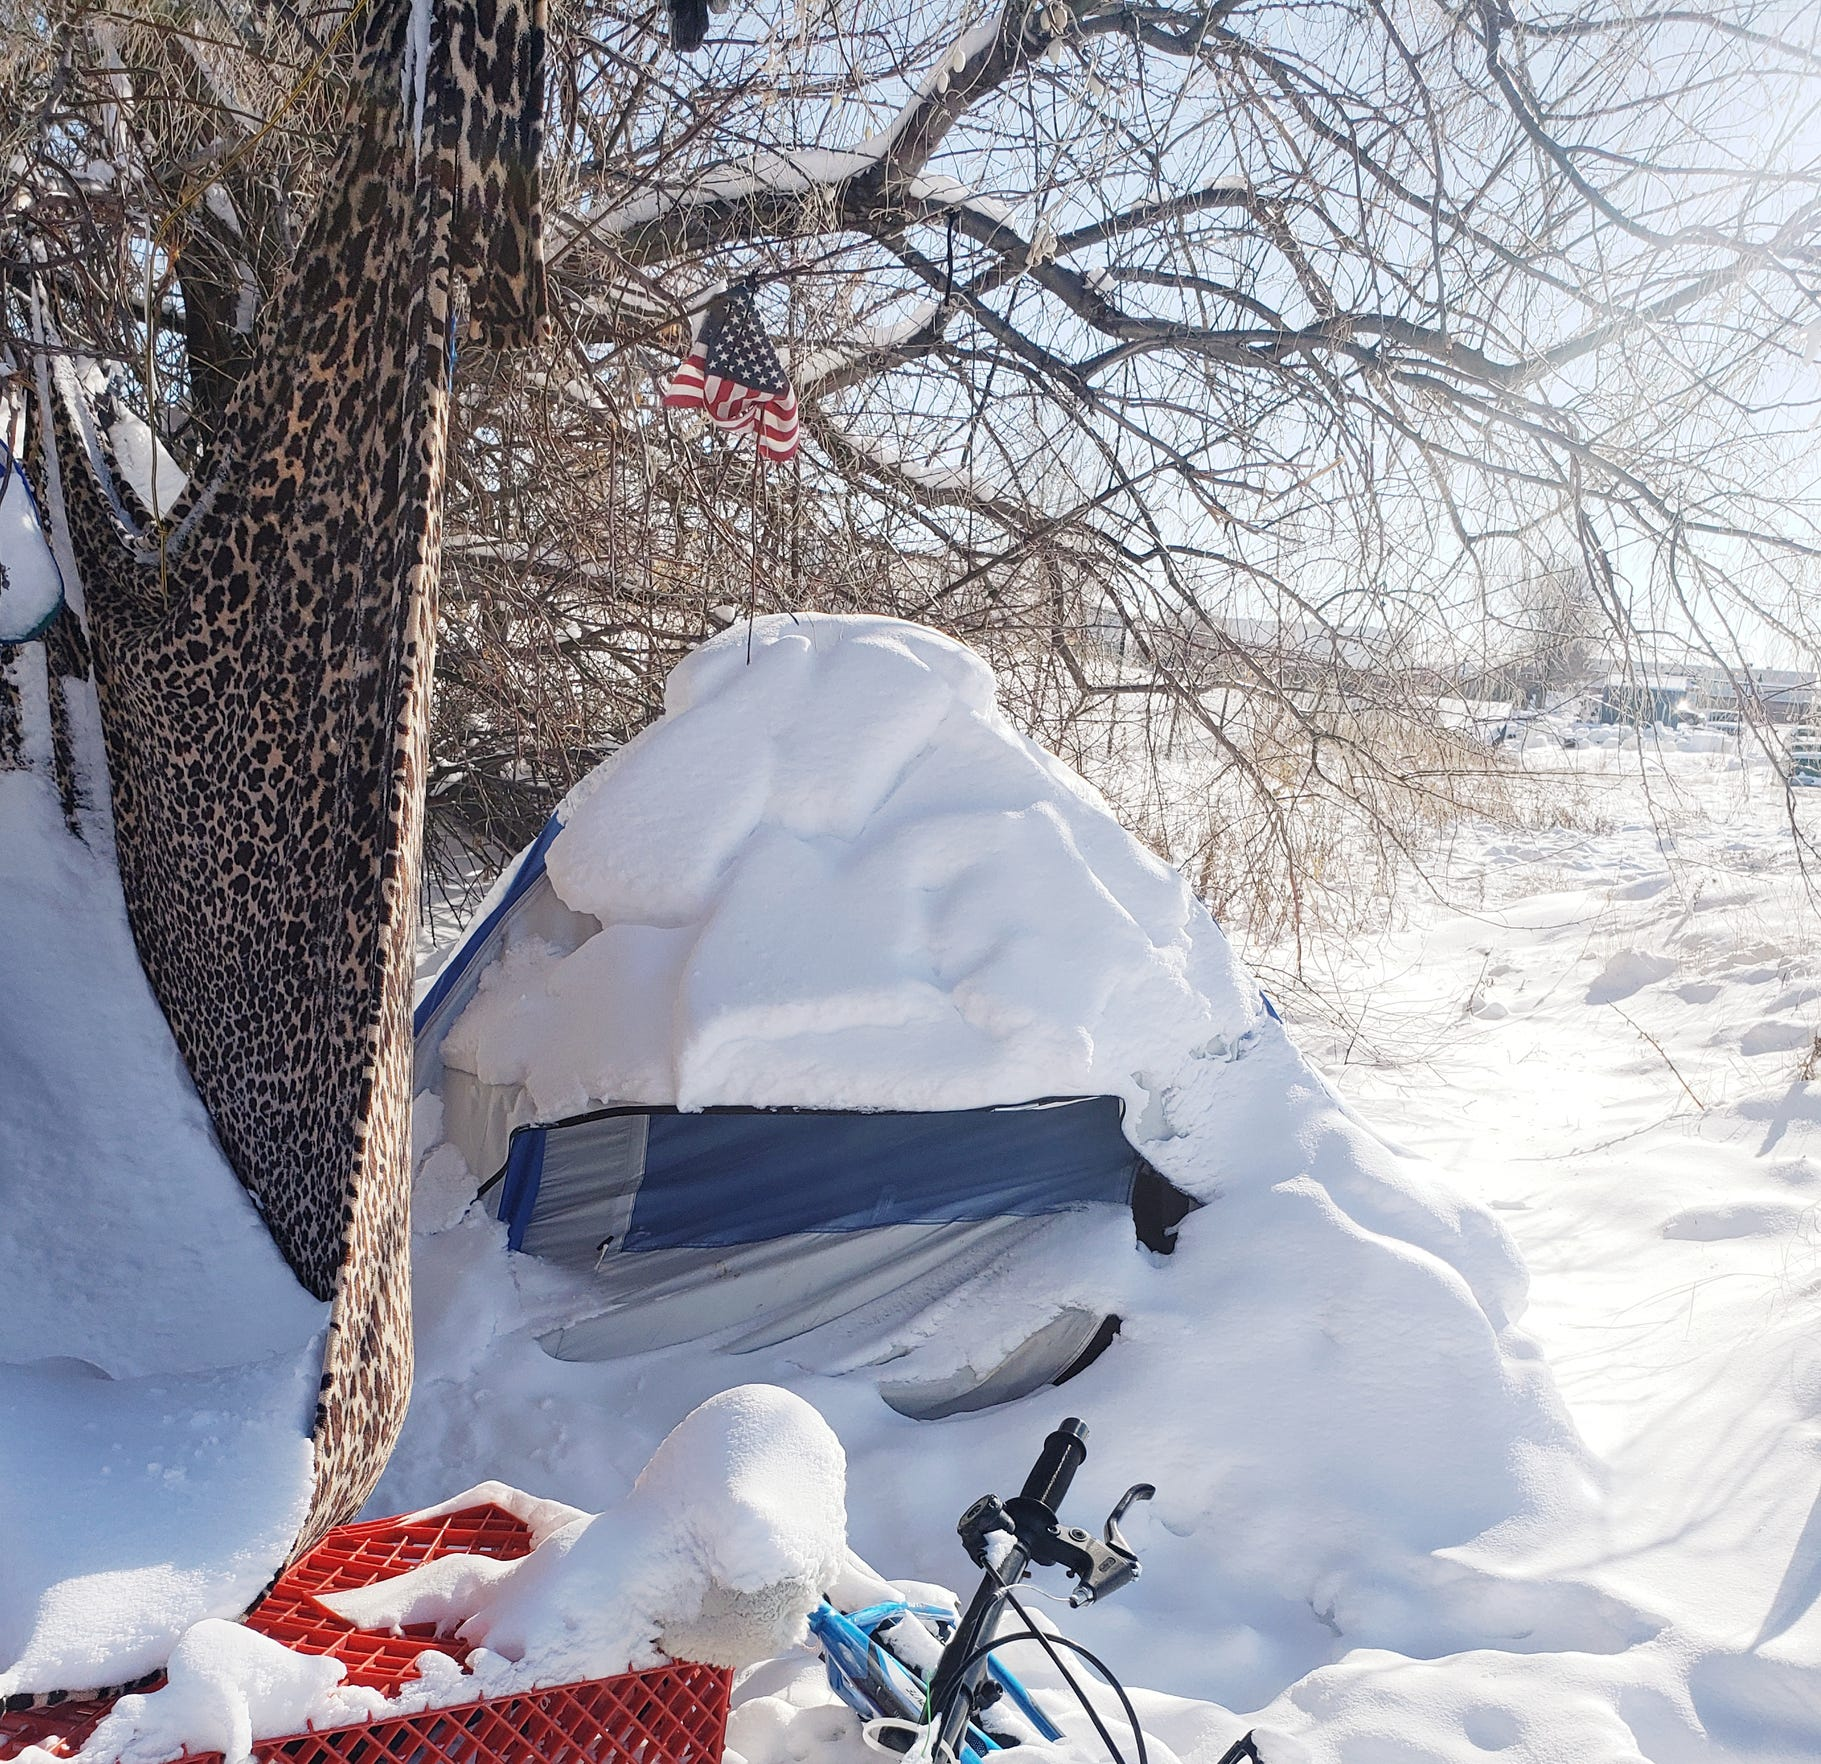 A homeless camp in Great Falls, which received 32.3 inches of snow in February, the city's third-snowiest February on record.